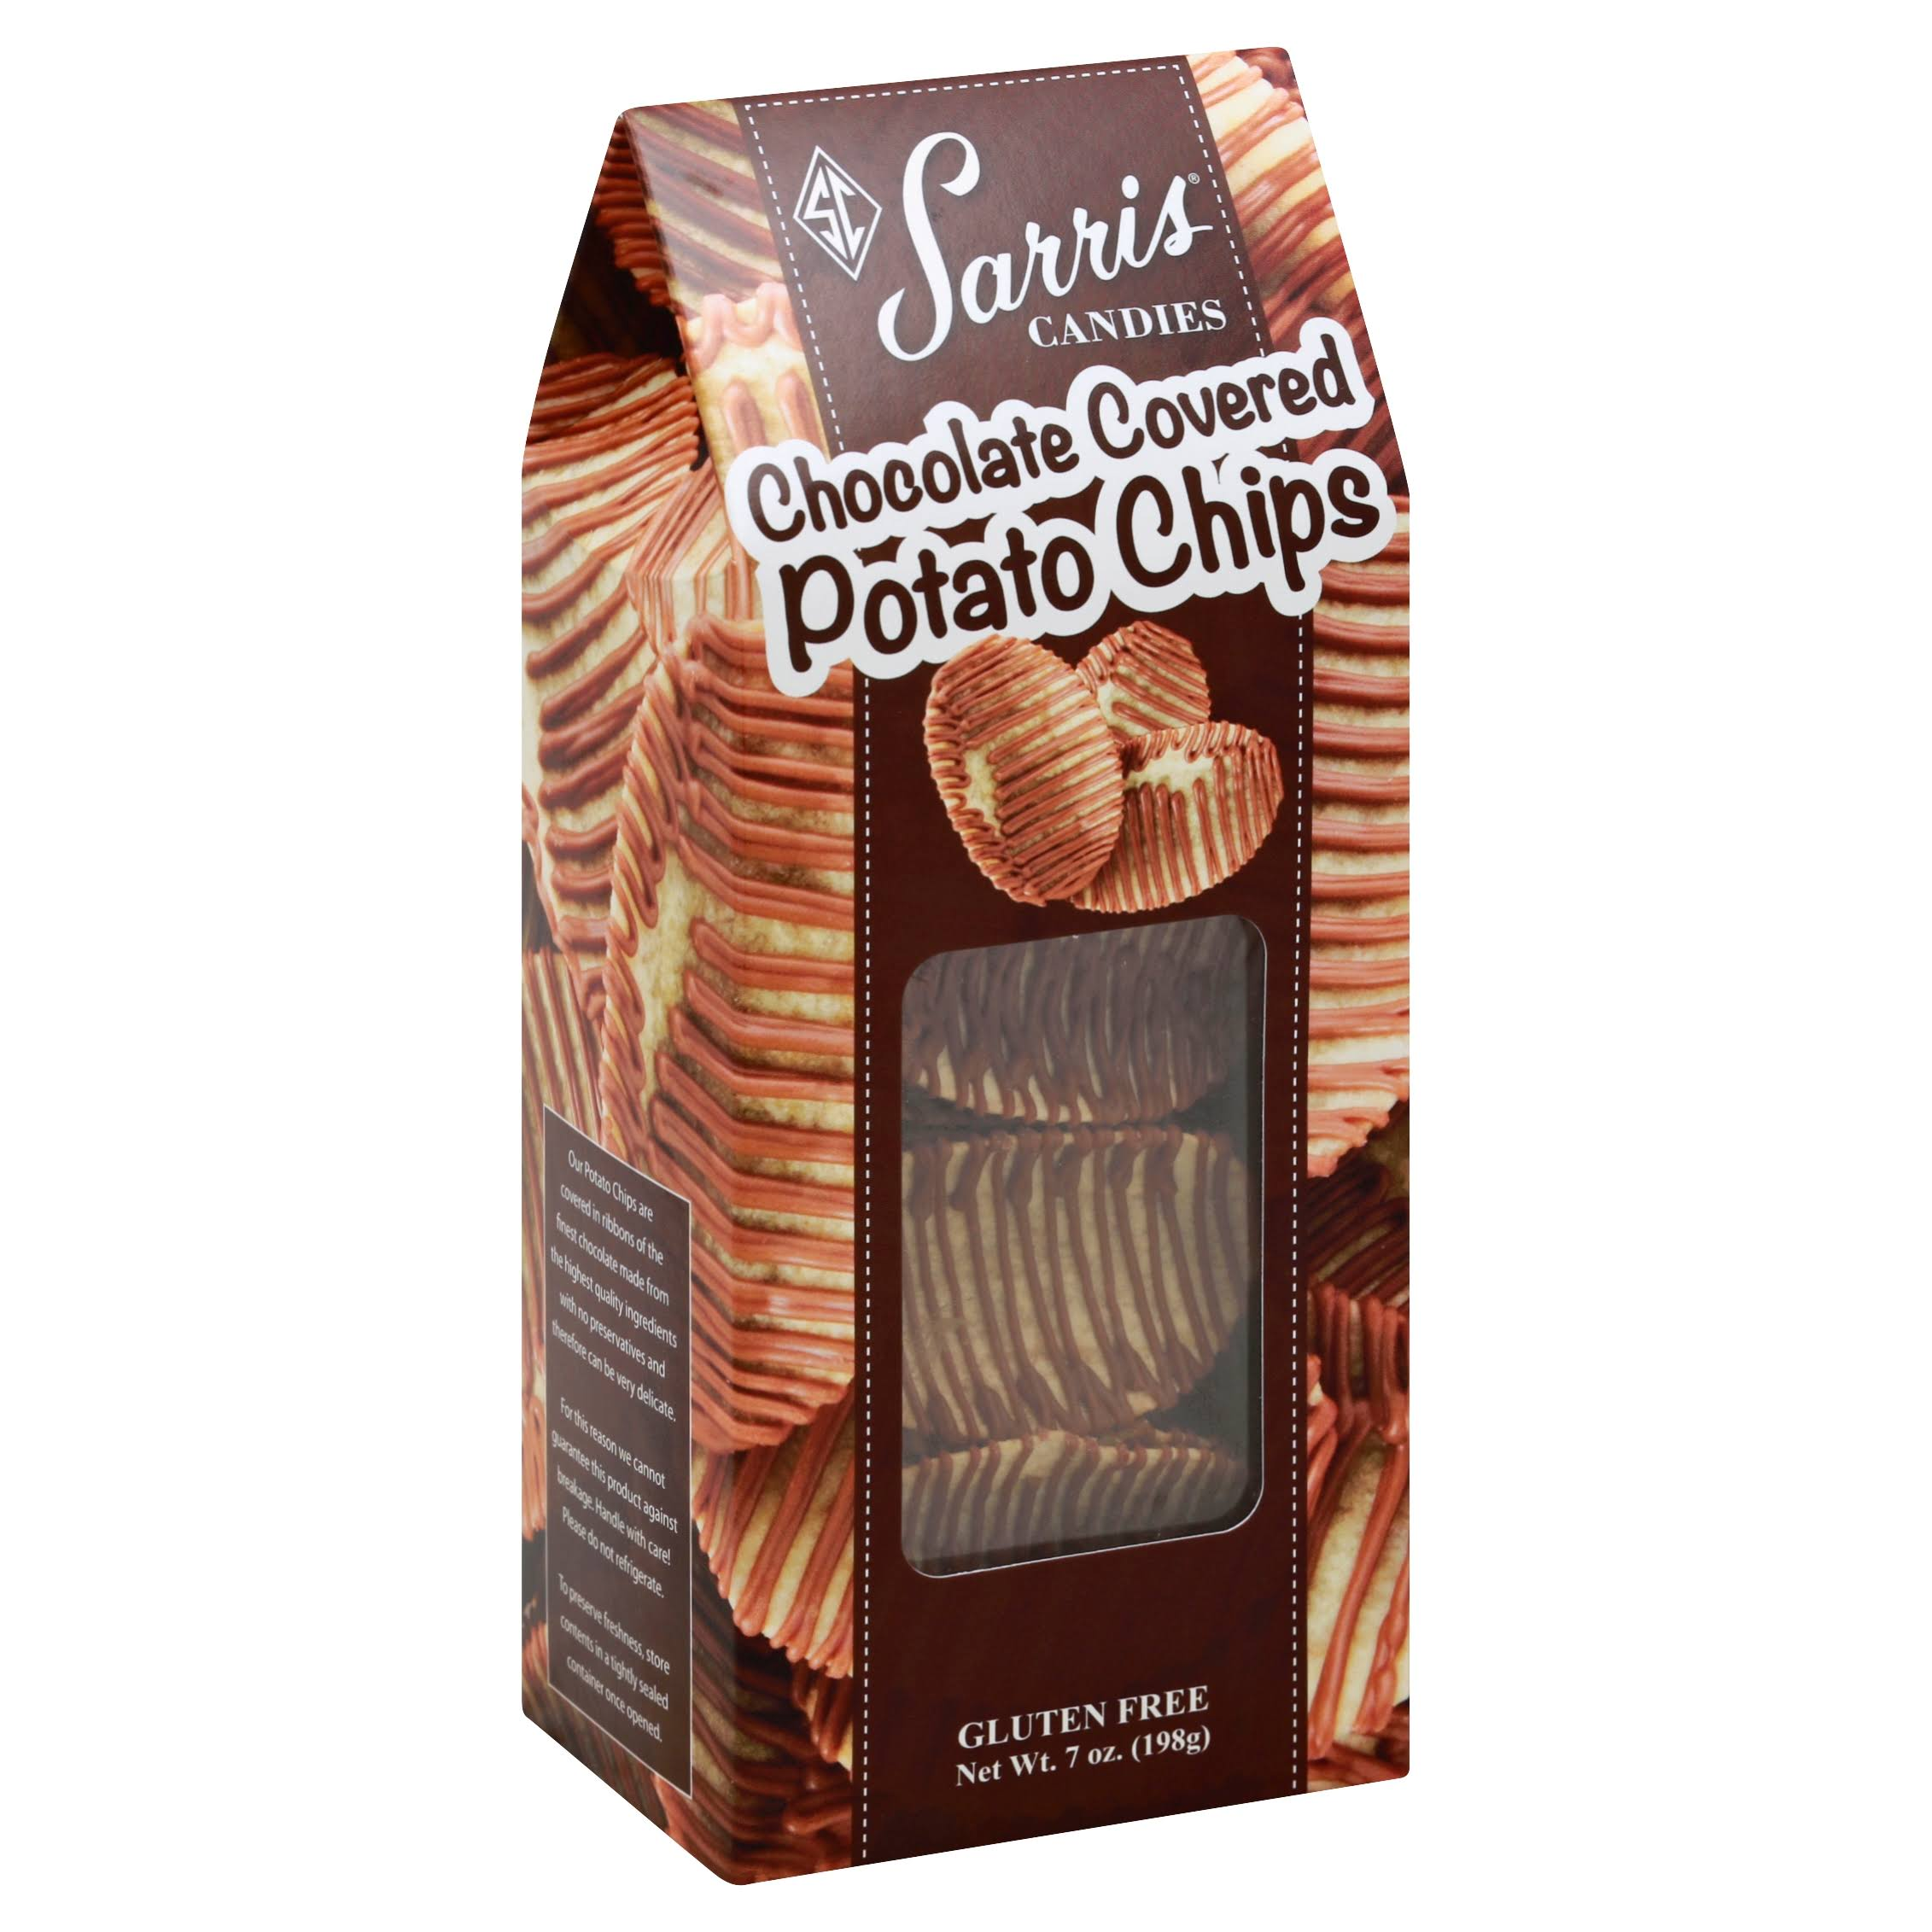 Sarris Candies Potato Chips, Chocolate Covered - 7 oz